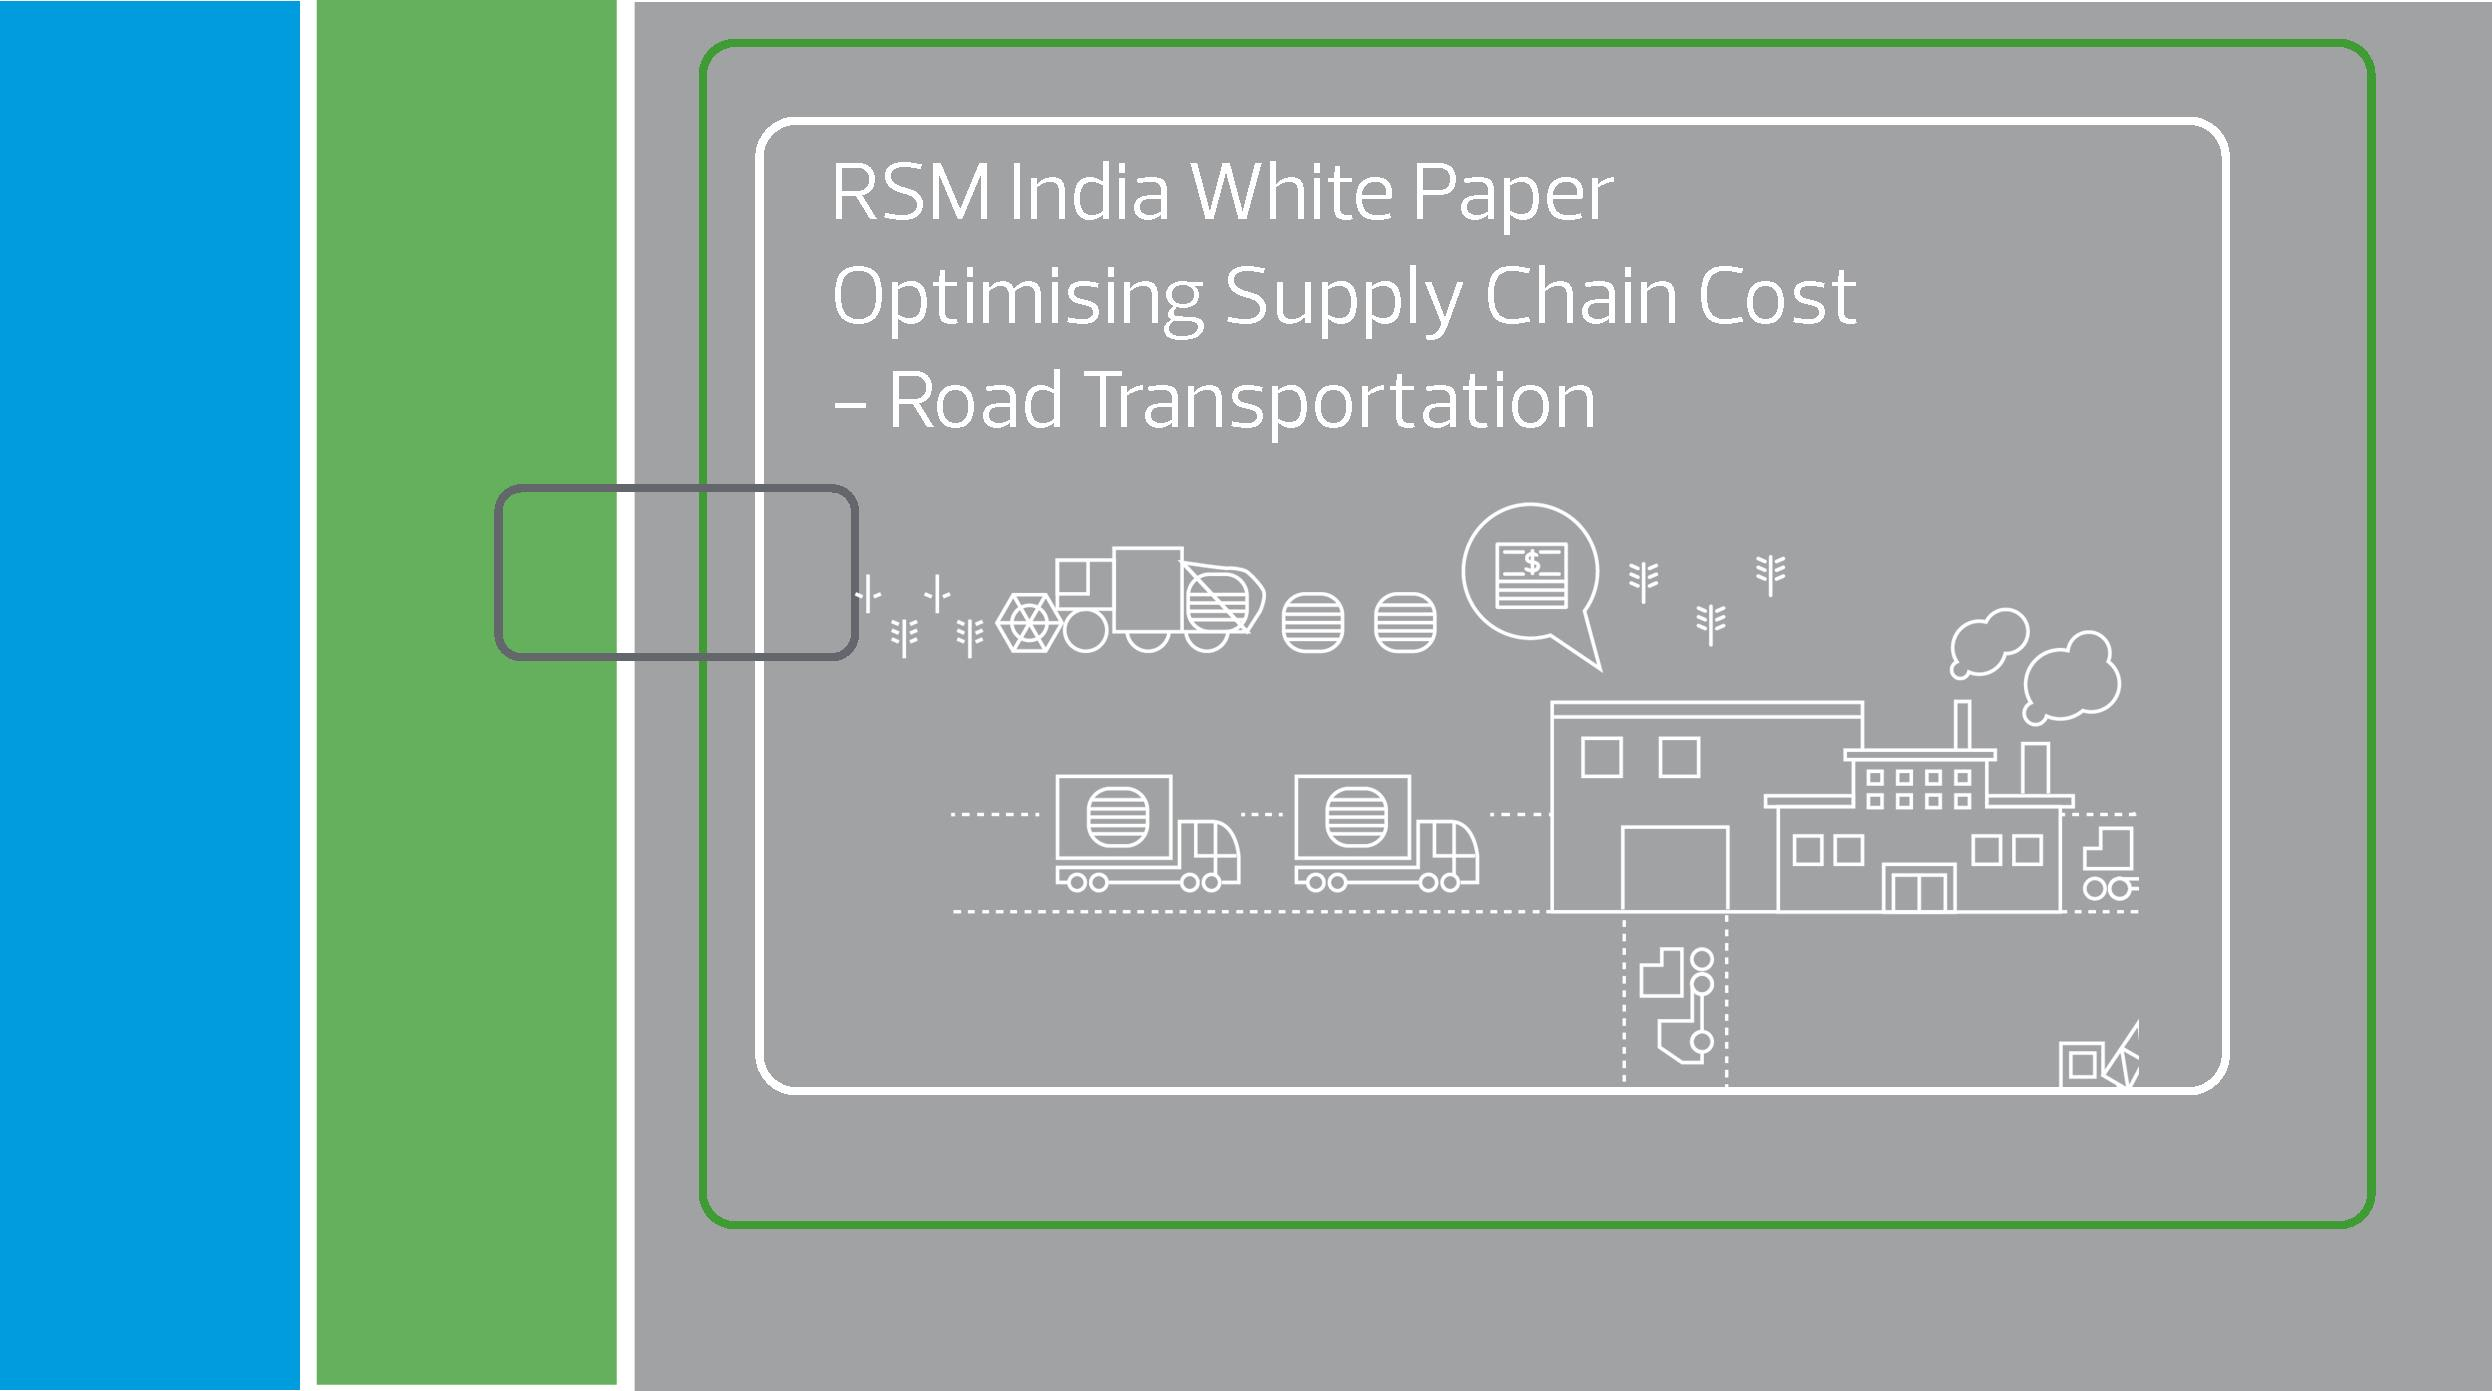 RSM India White Paper - Optimising Supply Chain Cost - Road